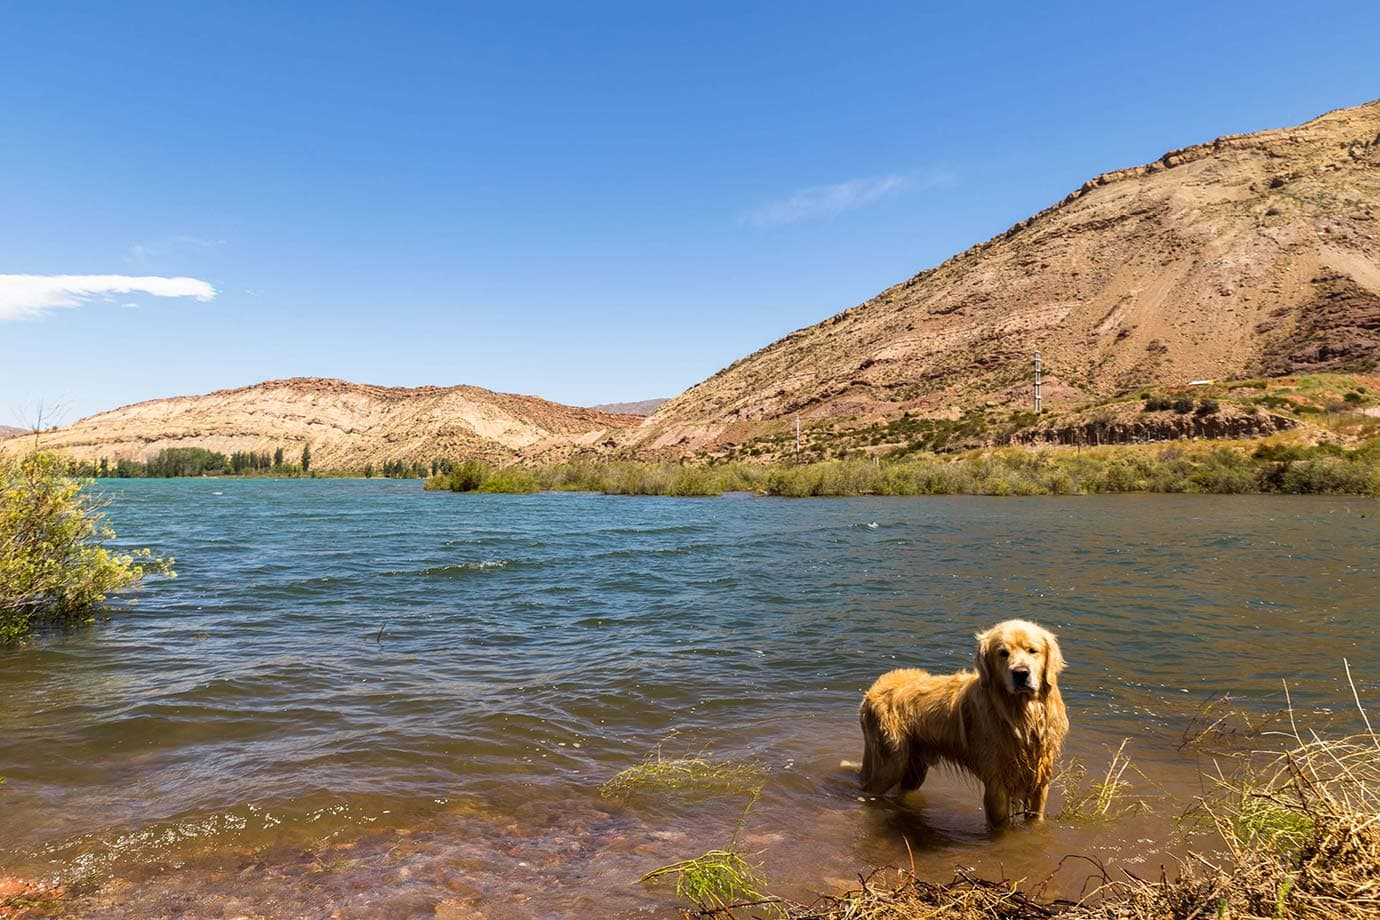 Dogs in lake, Argentina